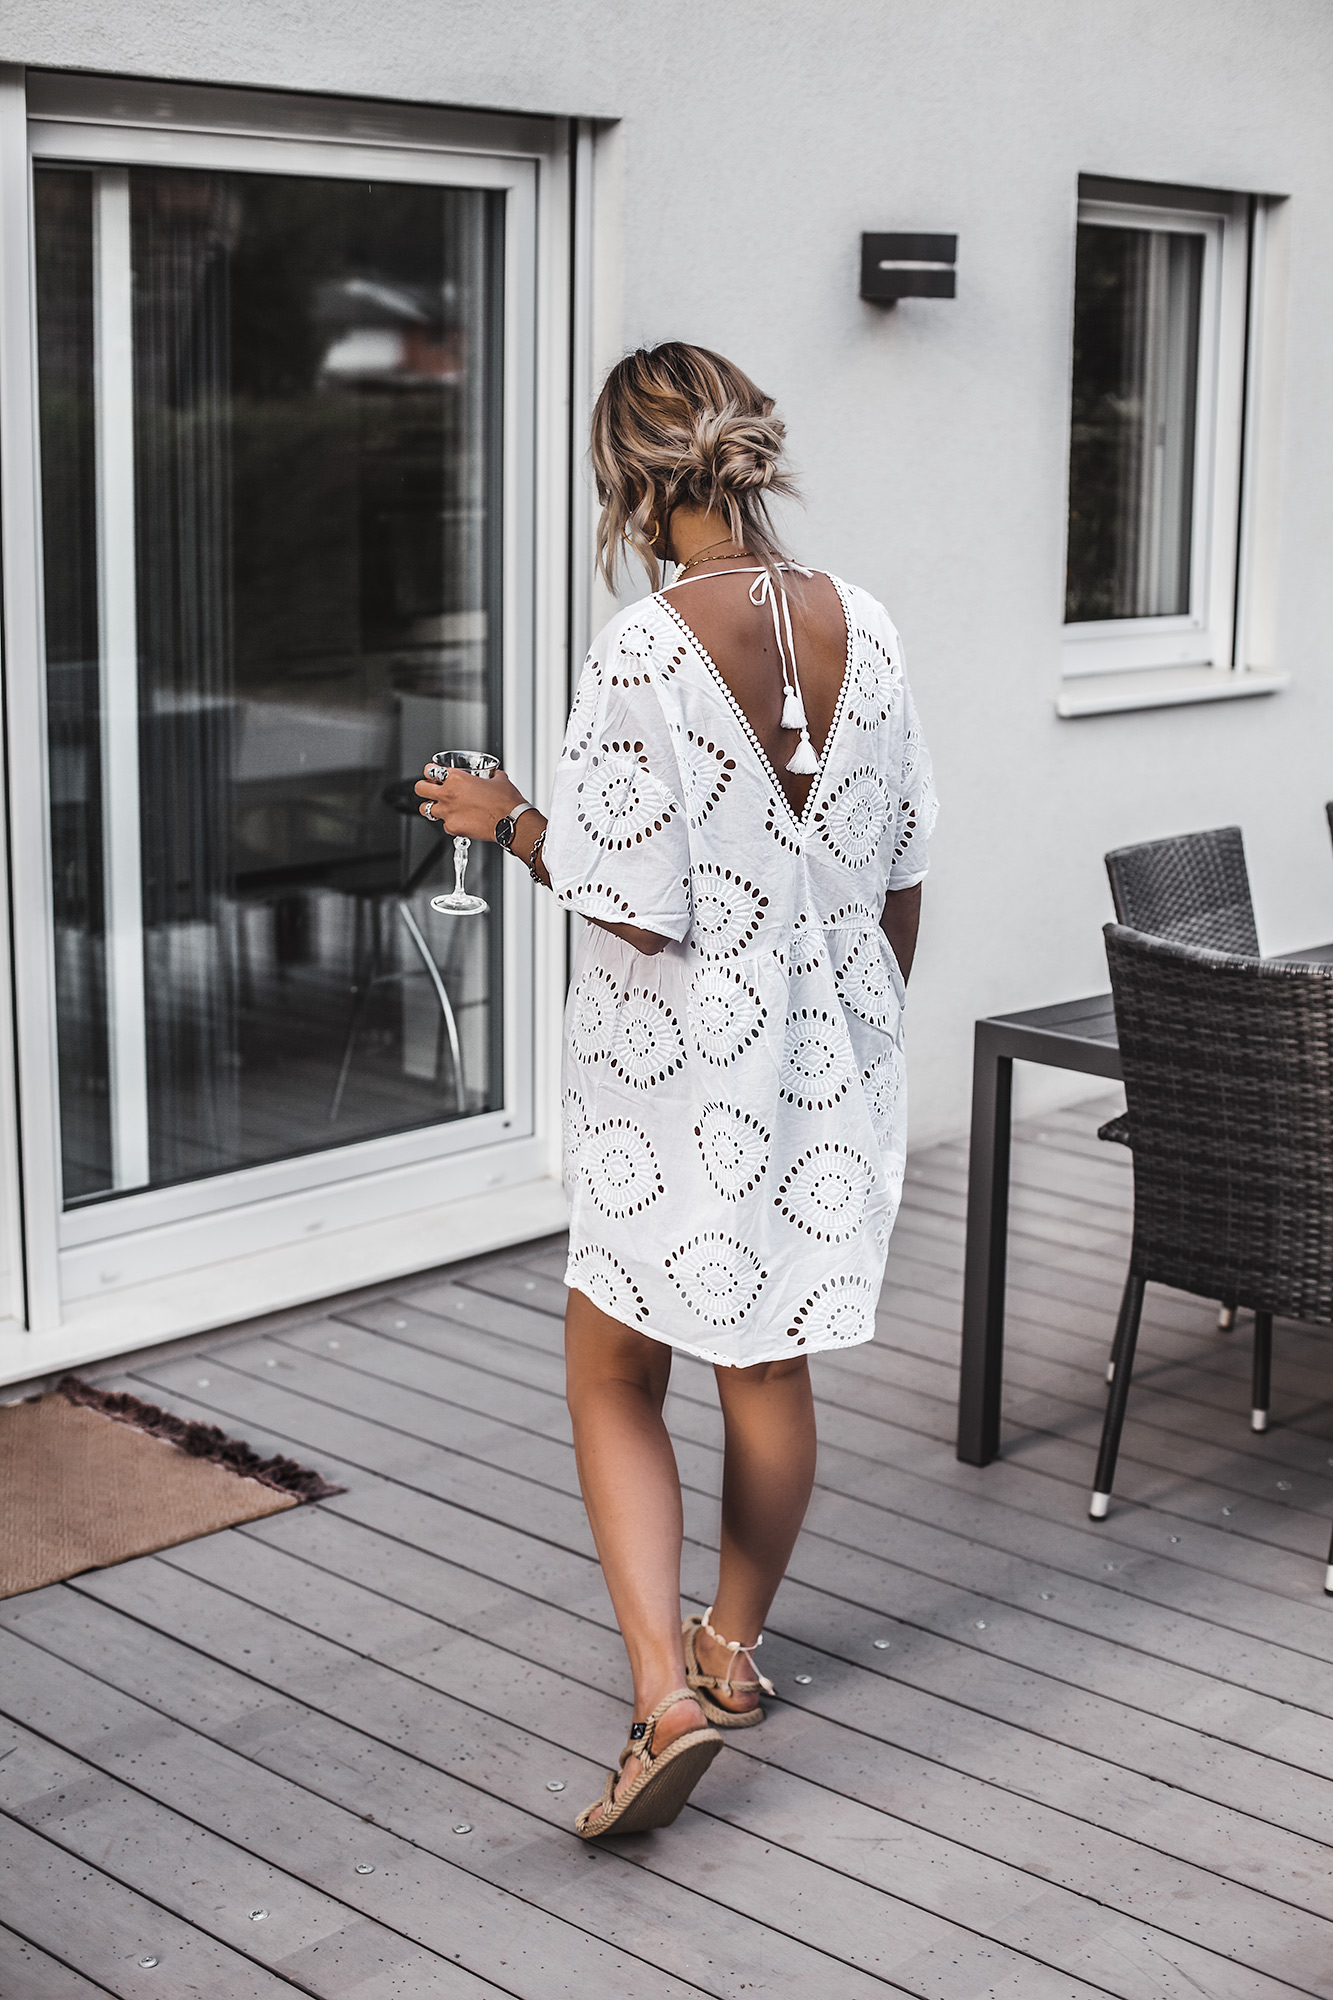 The best summer dress is always a white dress. If it is a boho beach style dress even better. If it is also a Broderie Anglaise dress with a beautiful open back, pom poms, and a perfect decollete, then it is the ultimate dress for this summer. And it's only under 40 €. White dress, boho rope sandals.